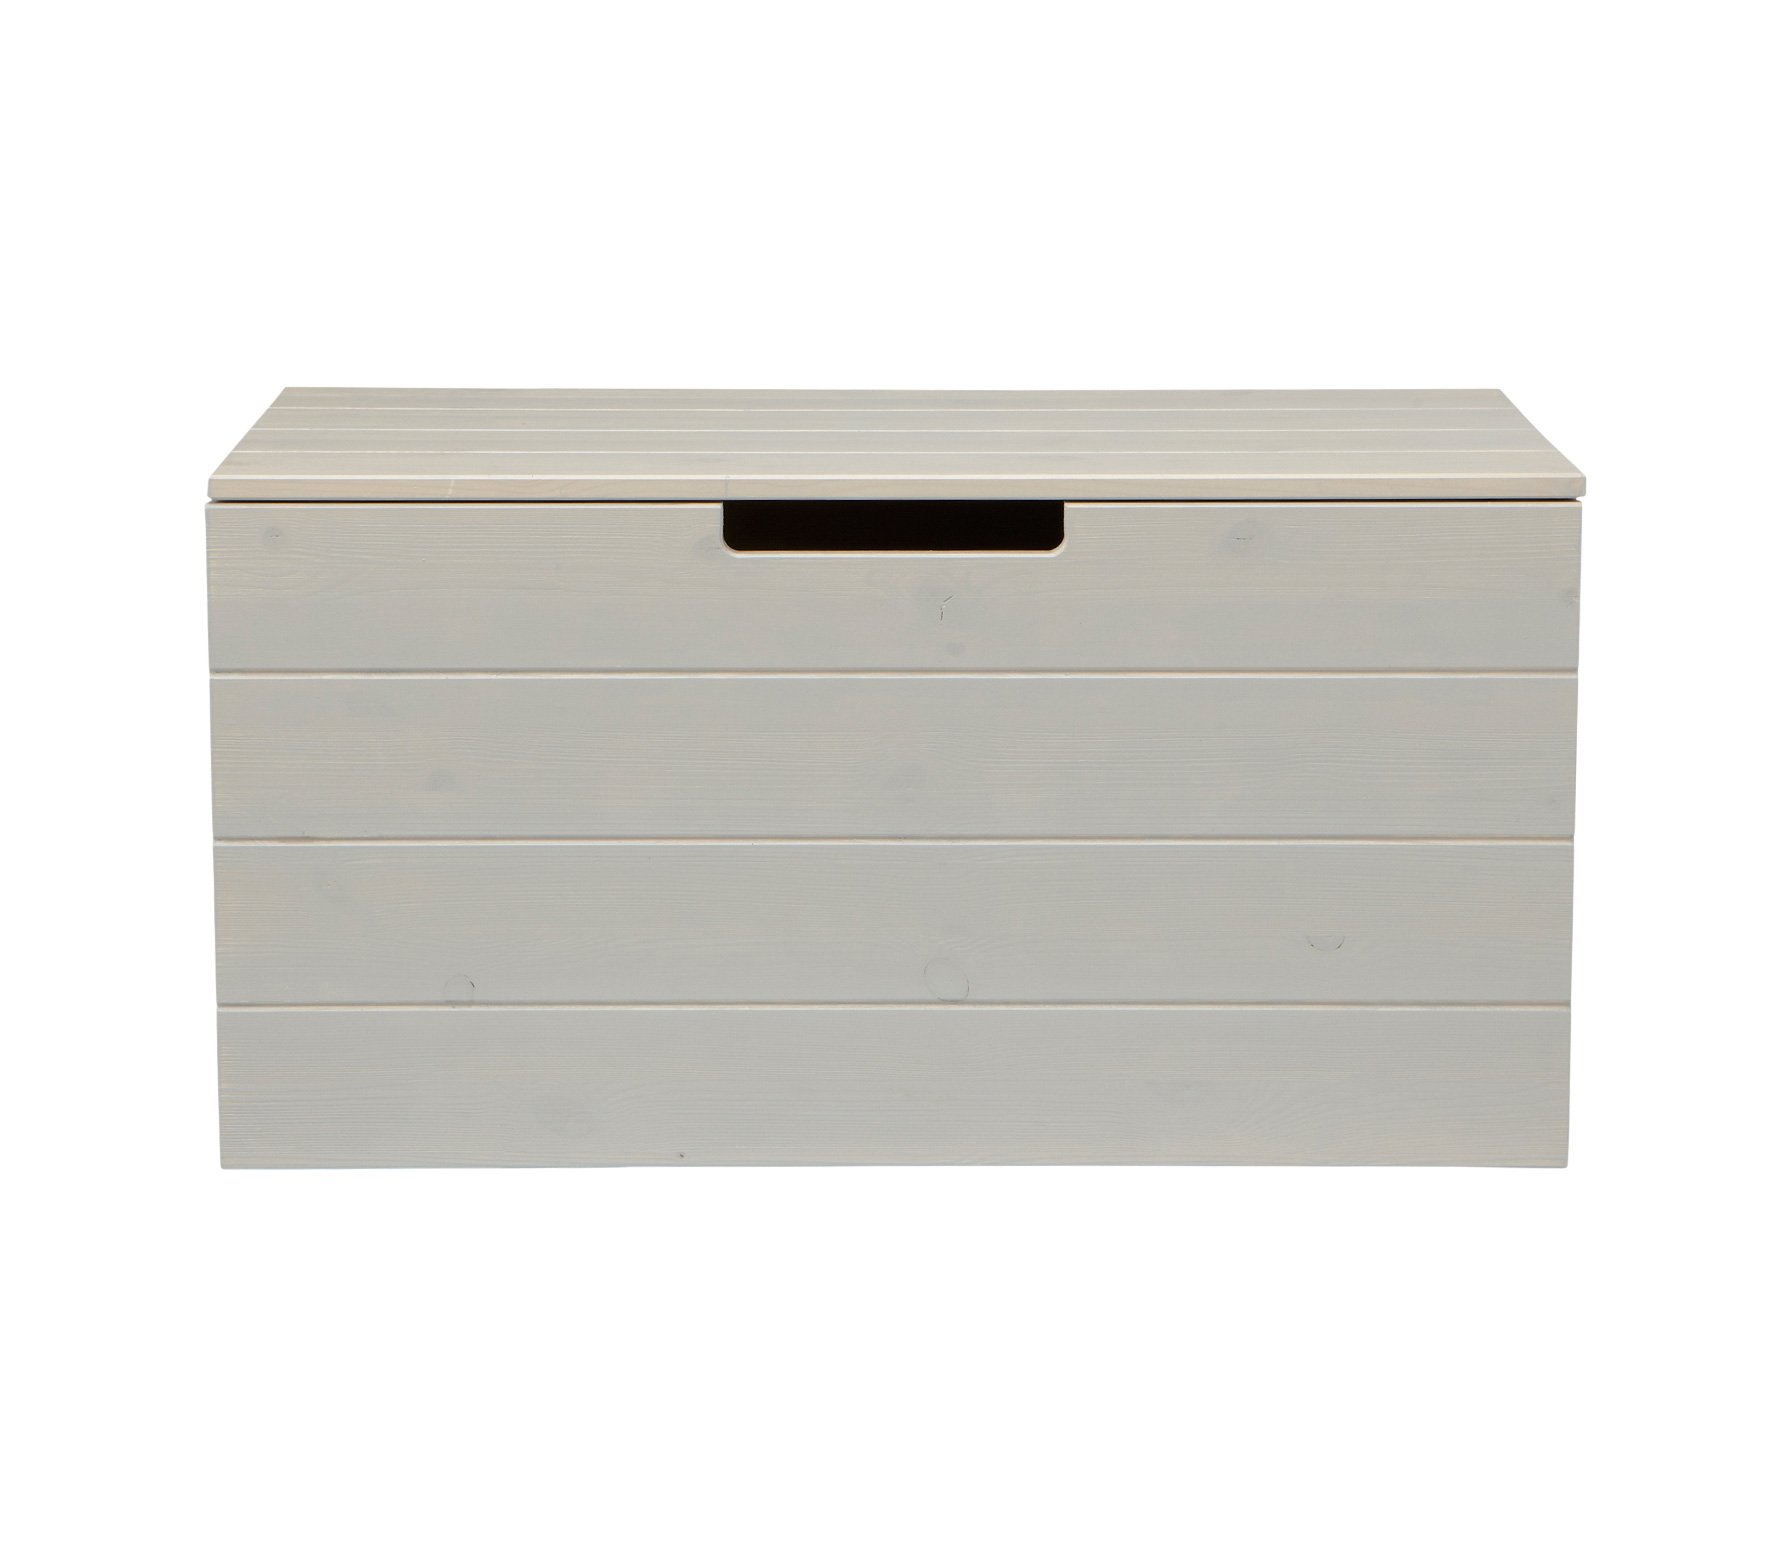 ... > STORAGE > All Storage > Mortimer Toy Box – Brushed Pebble Grey